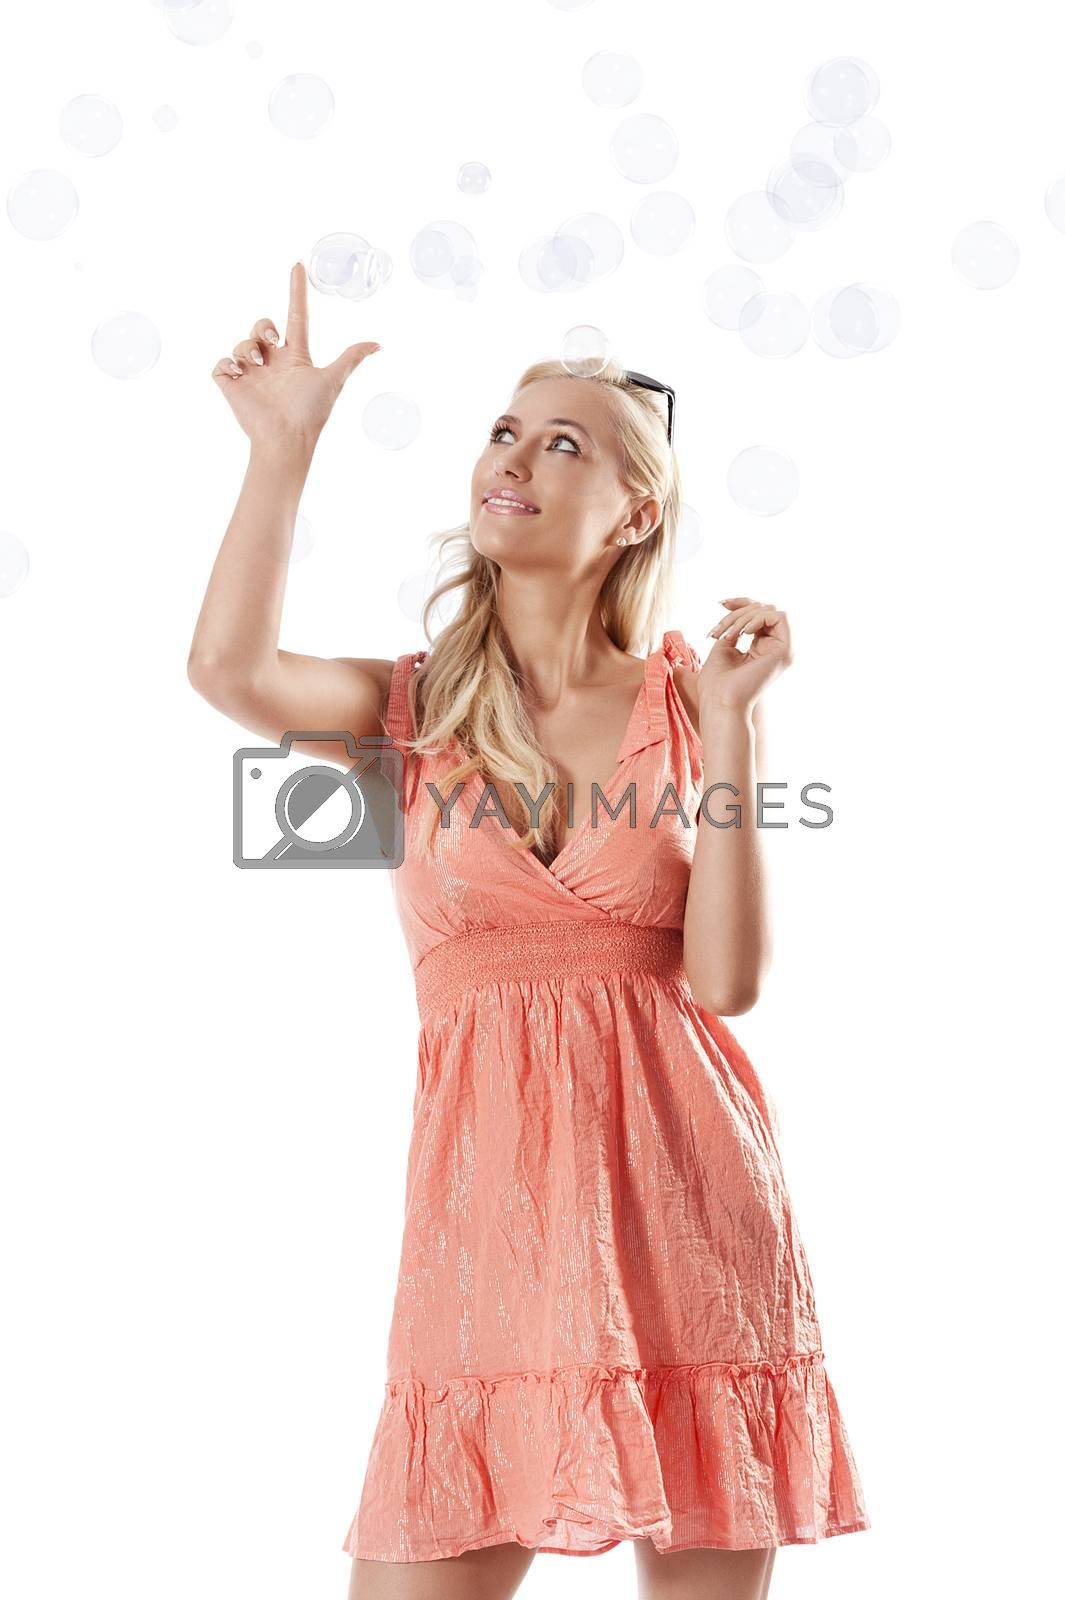 Royalty free image of blond beautiful girl playing against white background between so by fotoCD